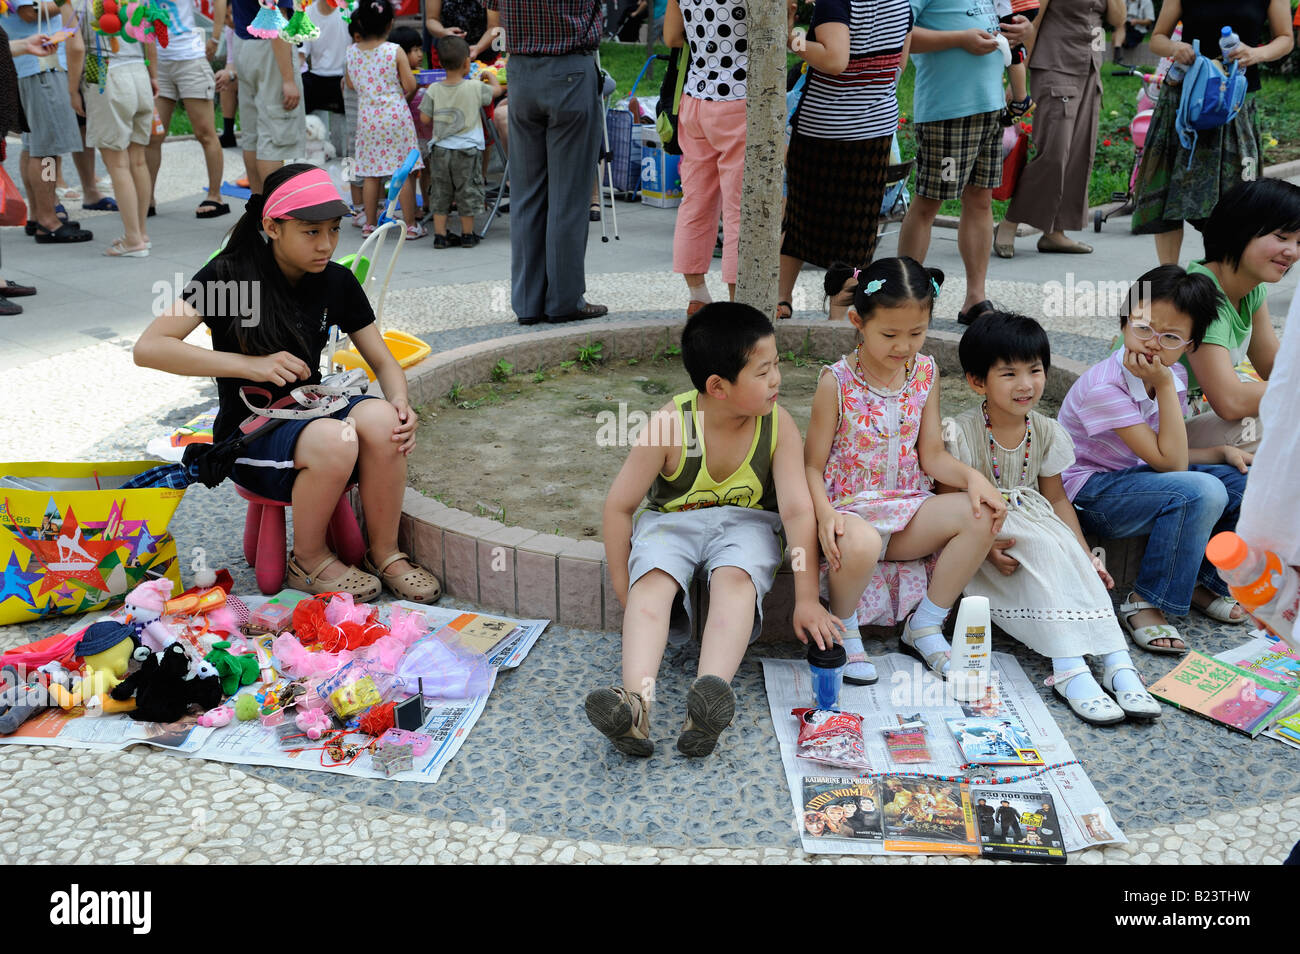 Teenages sell uesd goods at flea market on Sunday in a community in Beijing, China. 13-Jul-2008 - Stock Image